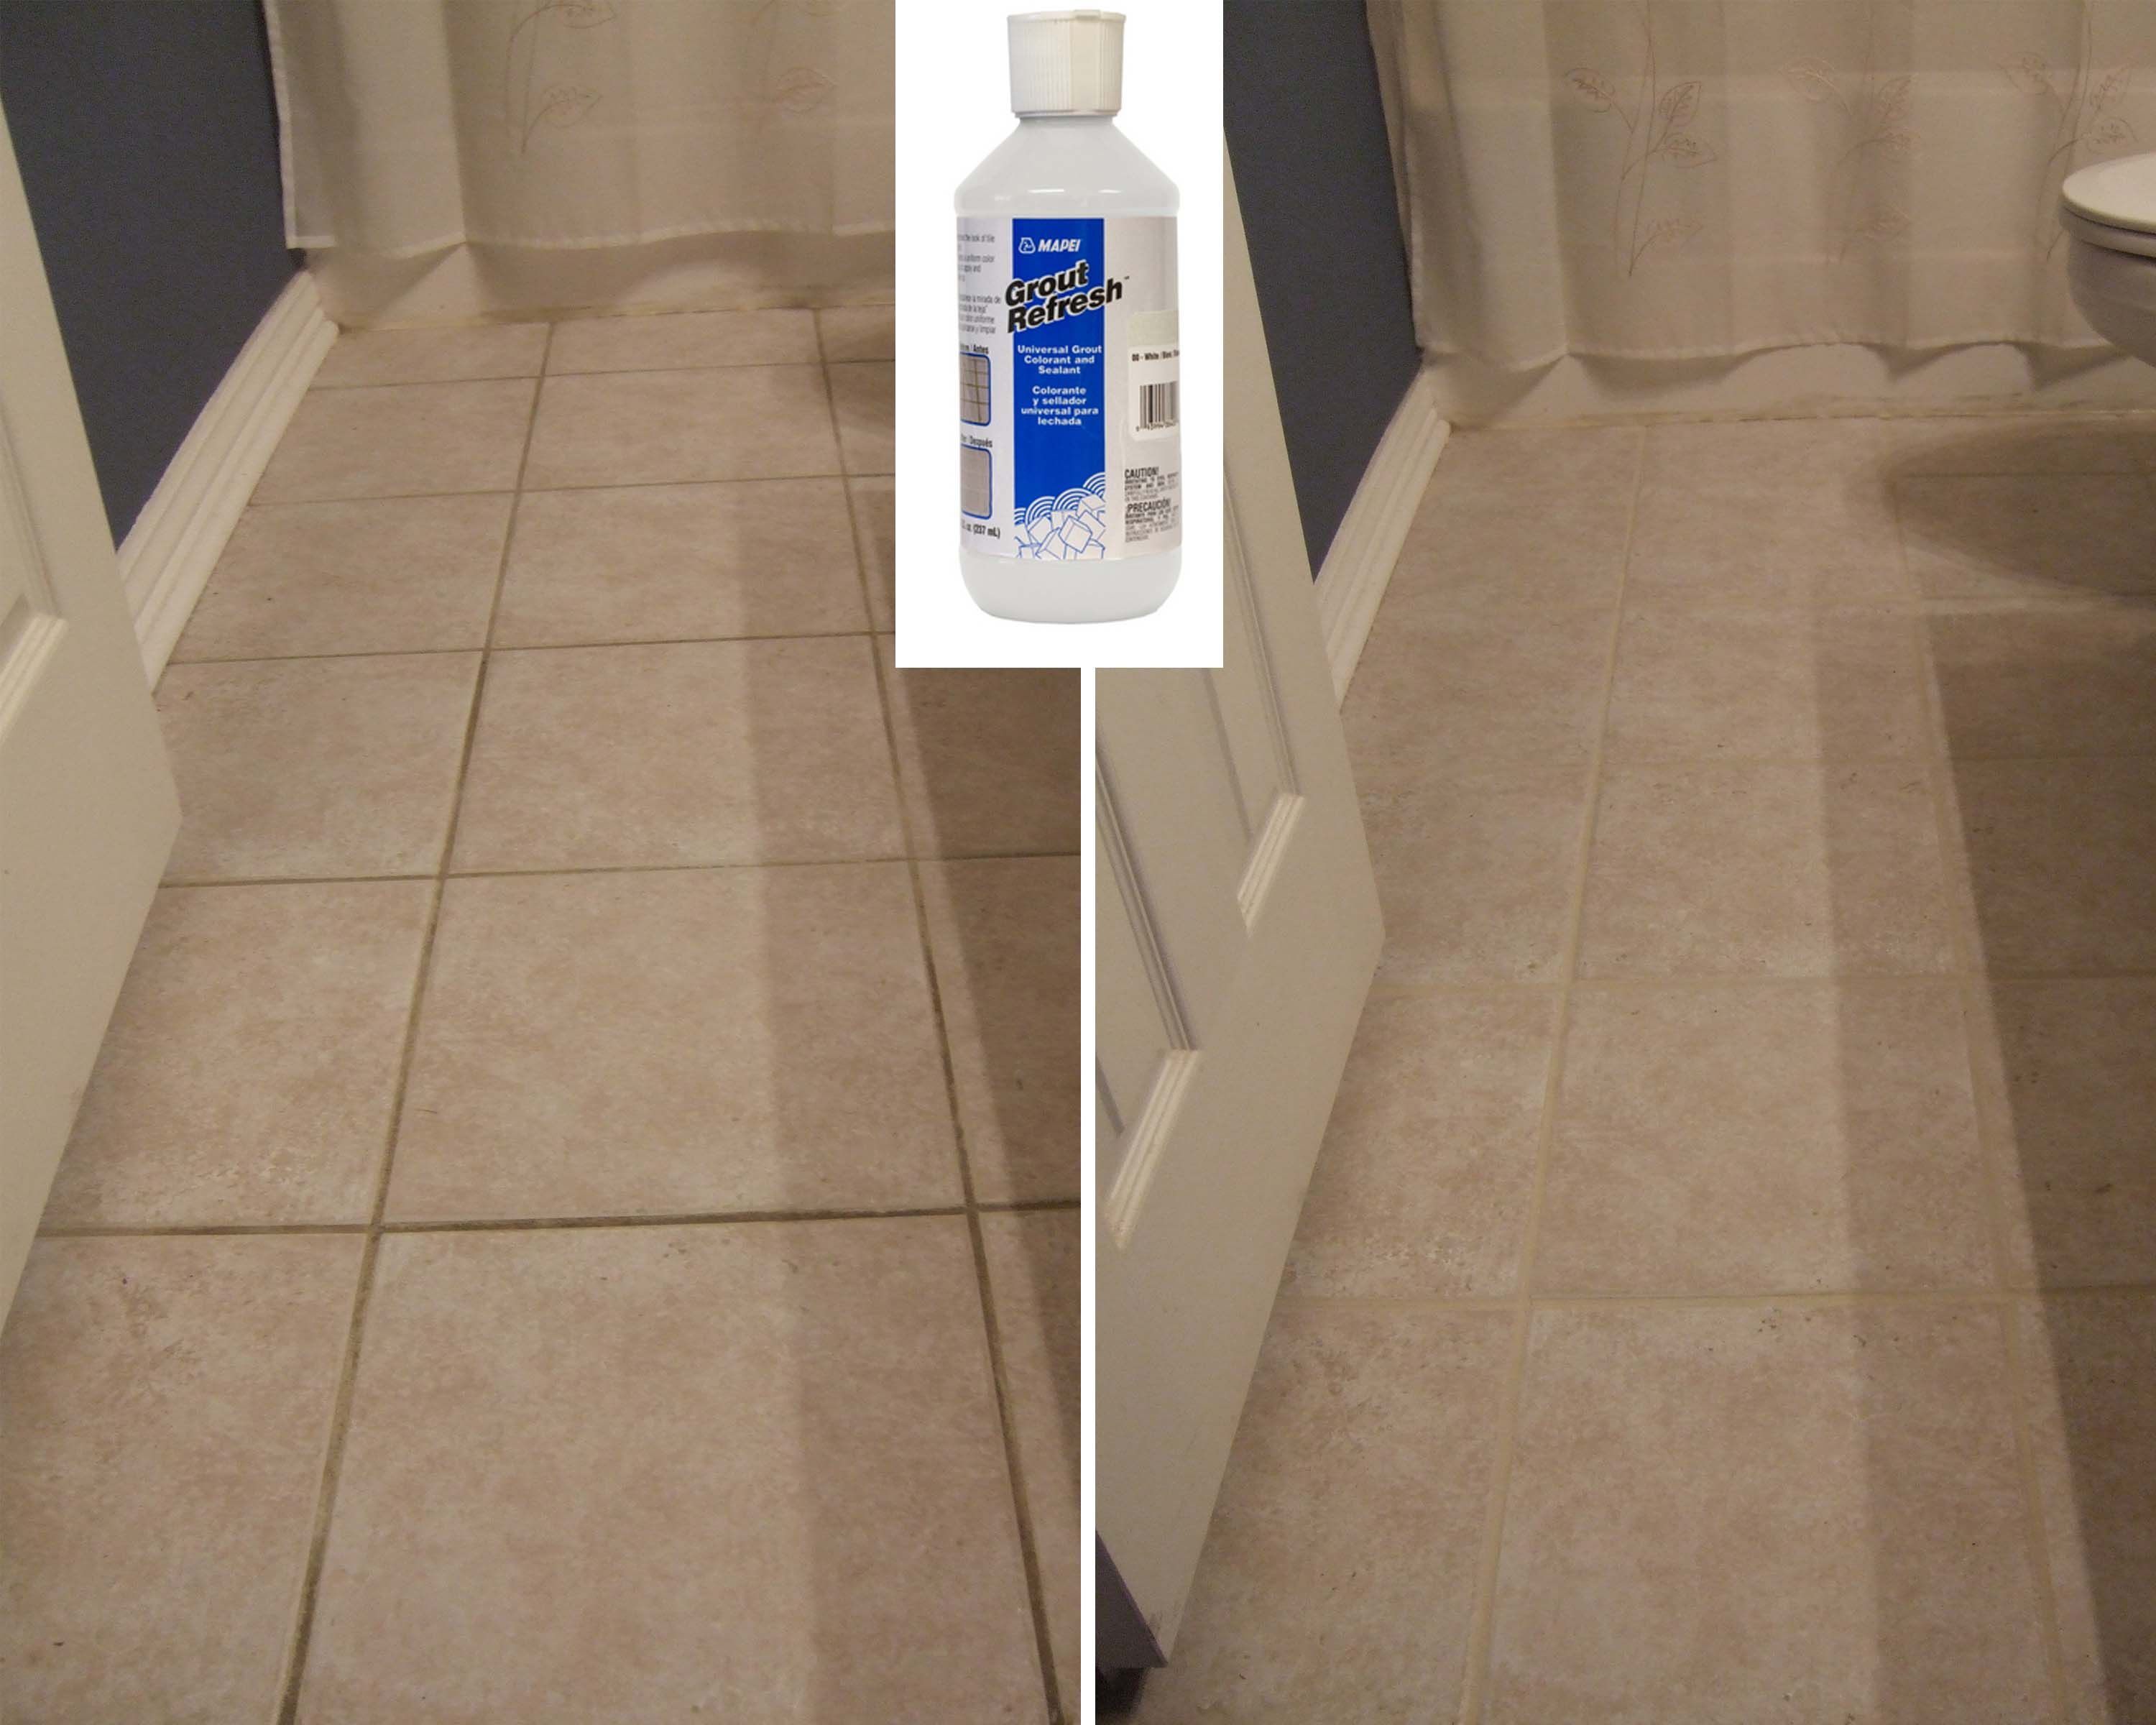 How to clean grout with peroxide baking soda grout clean grout how to clean grout with peroxide baking soda hunker dailygadgetfo Images